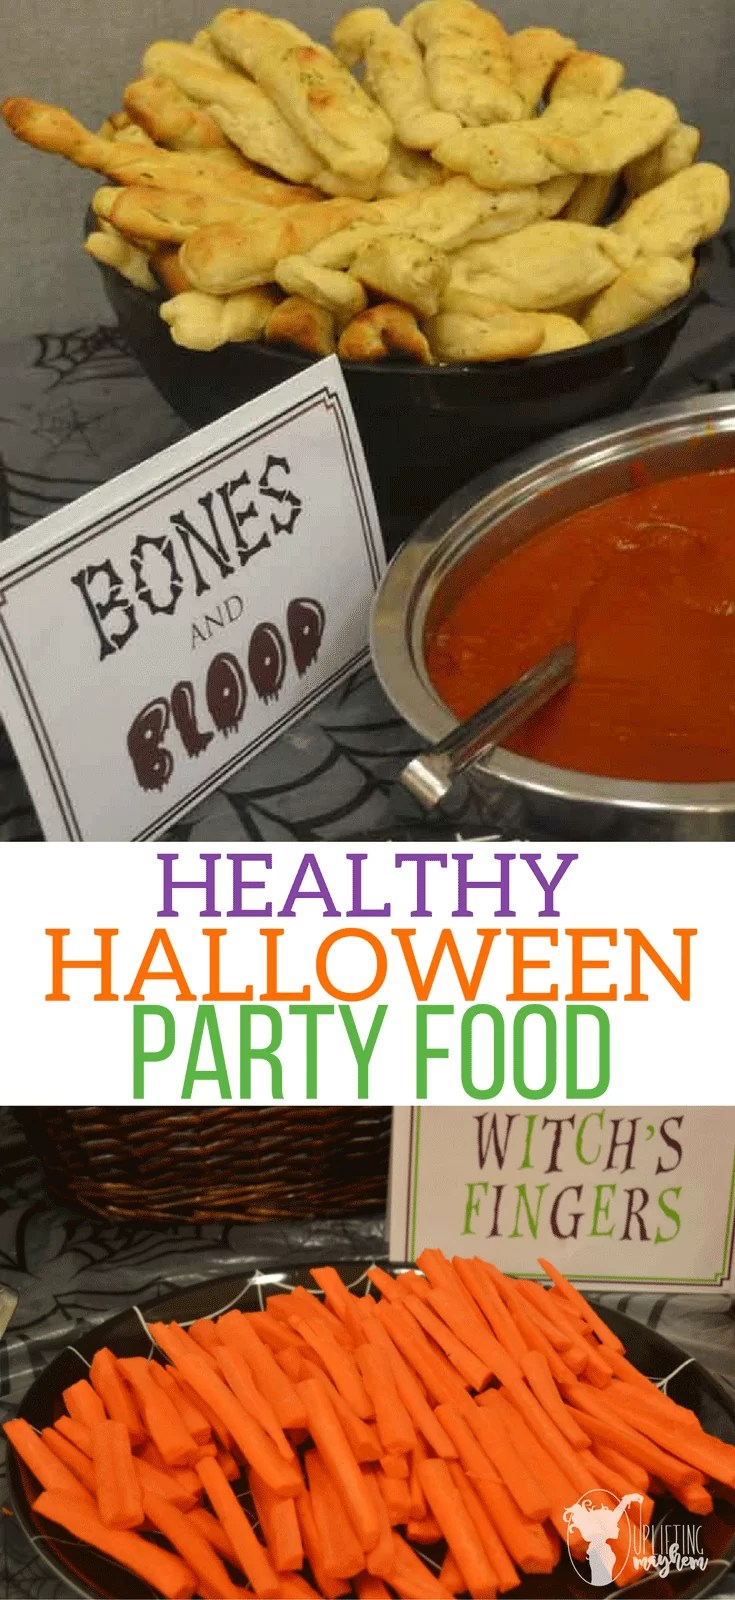 Healthy and spooky foods for Halloween Parties! Such fun and delicious ideas your guests will love! Embellish your table with adorable FREE PRINTABLE labels like witches fingers for carrots and bones and blood for bread sticks and marinara sauce!